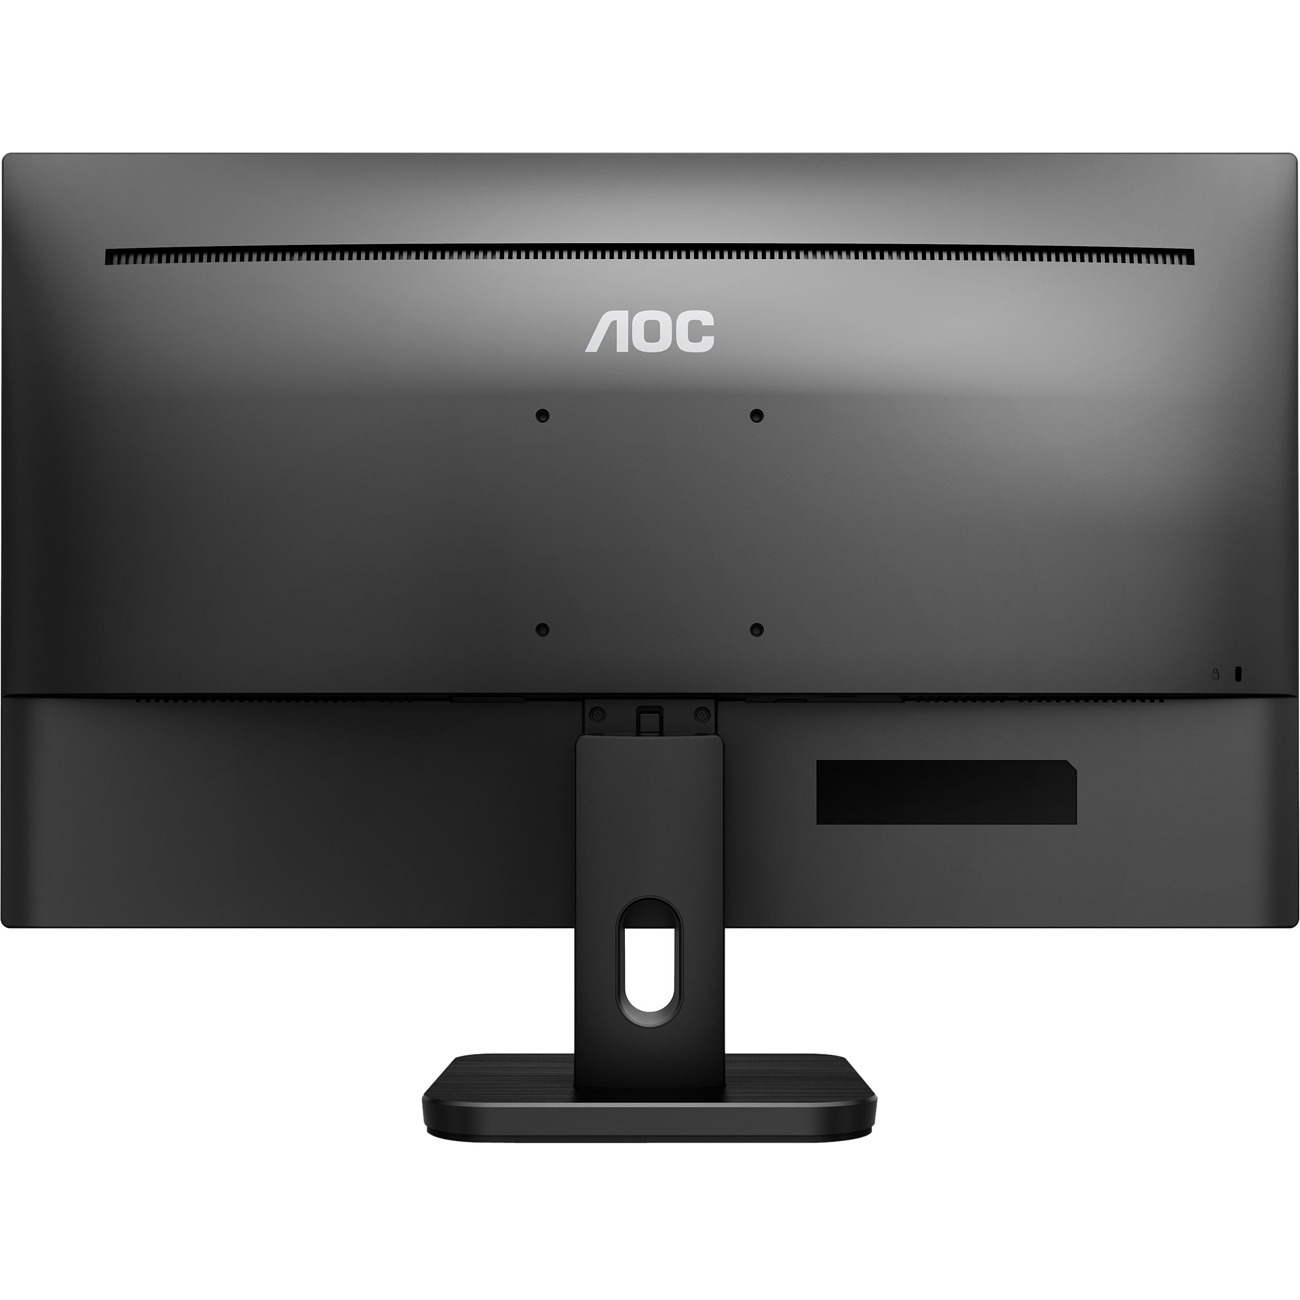 AOC 27E1H 27inch IPS LED LCD Monitor - 16:9 - 5 ms